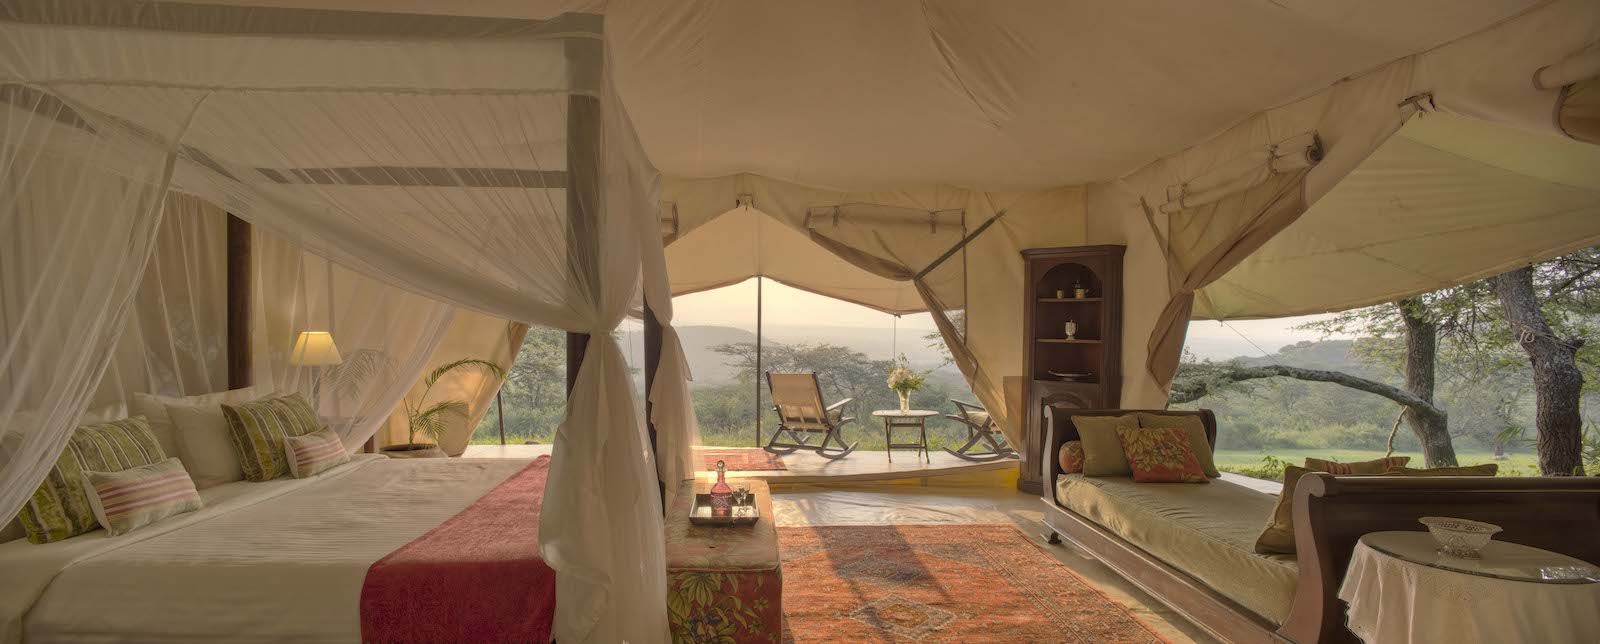 Standard Tent Cottars Safari Camp